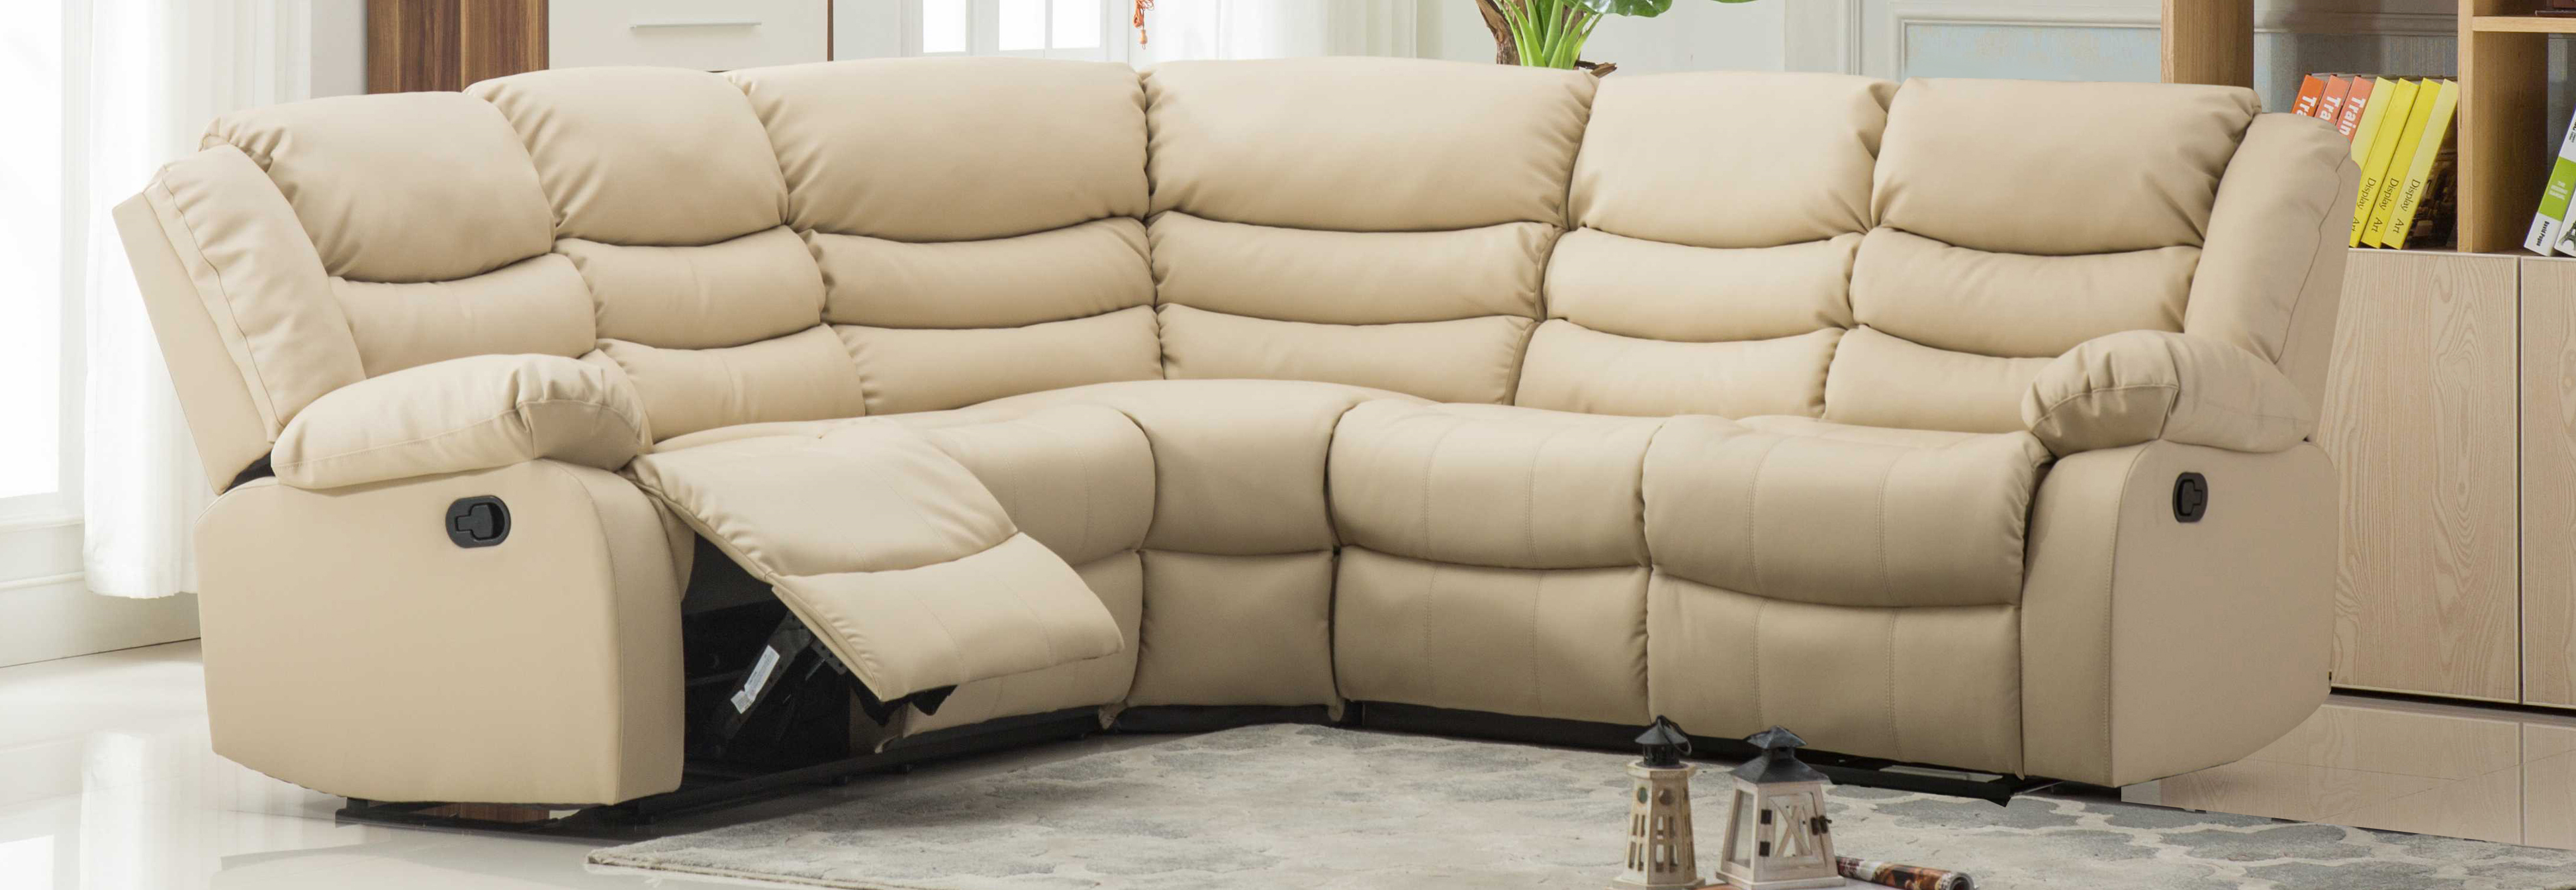 Astoria Reclining Corner Suite cream